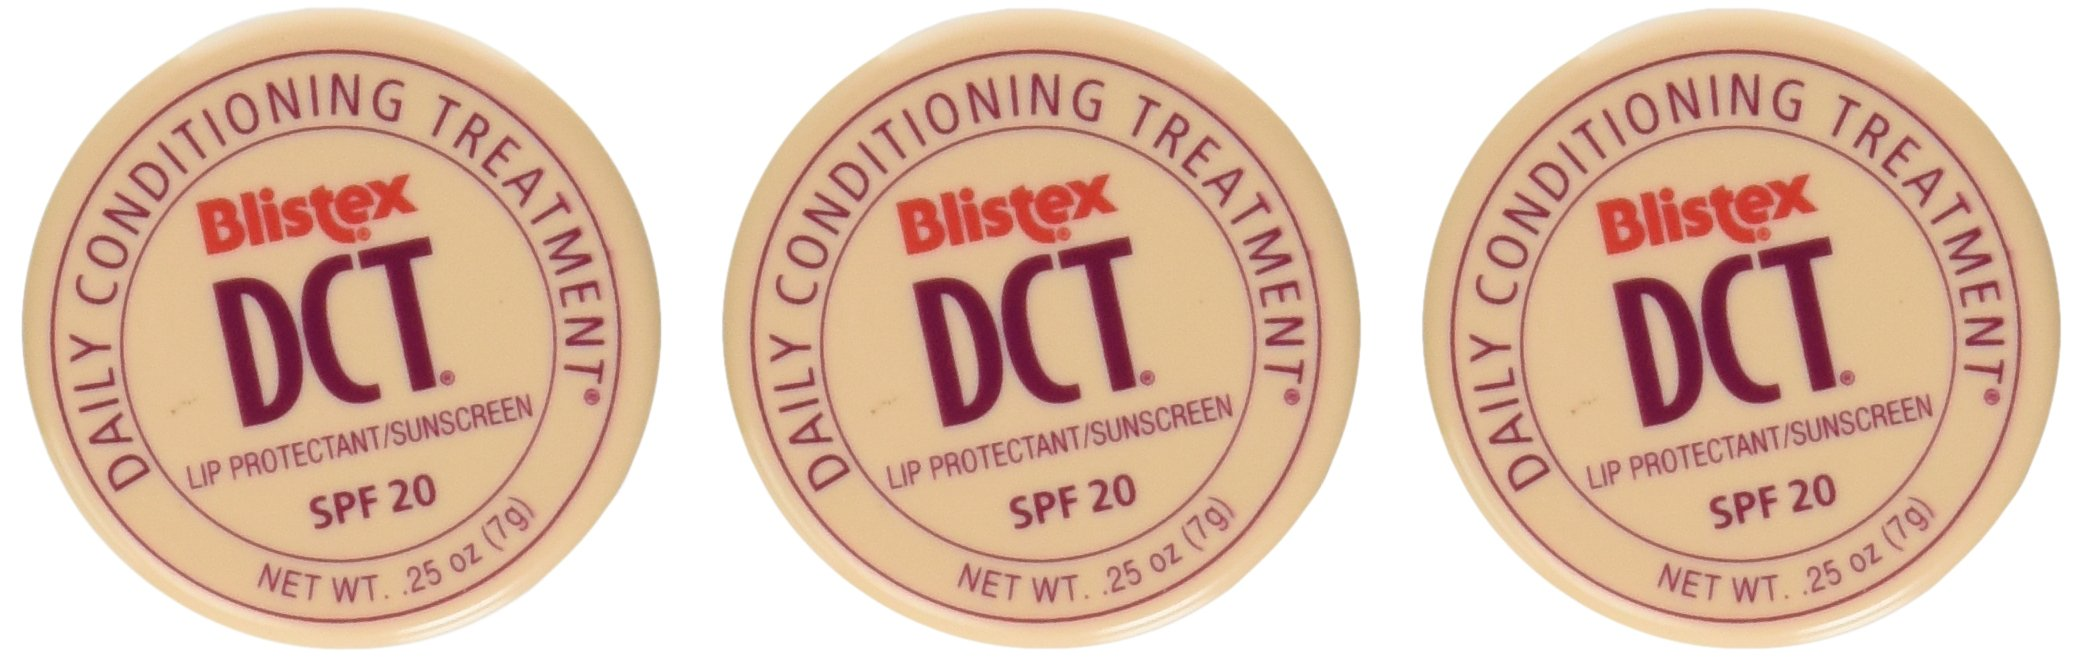 Blistex DCT Jars, SPF 20 (Pack of 3)